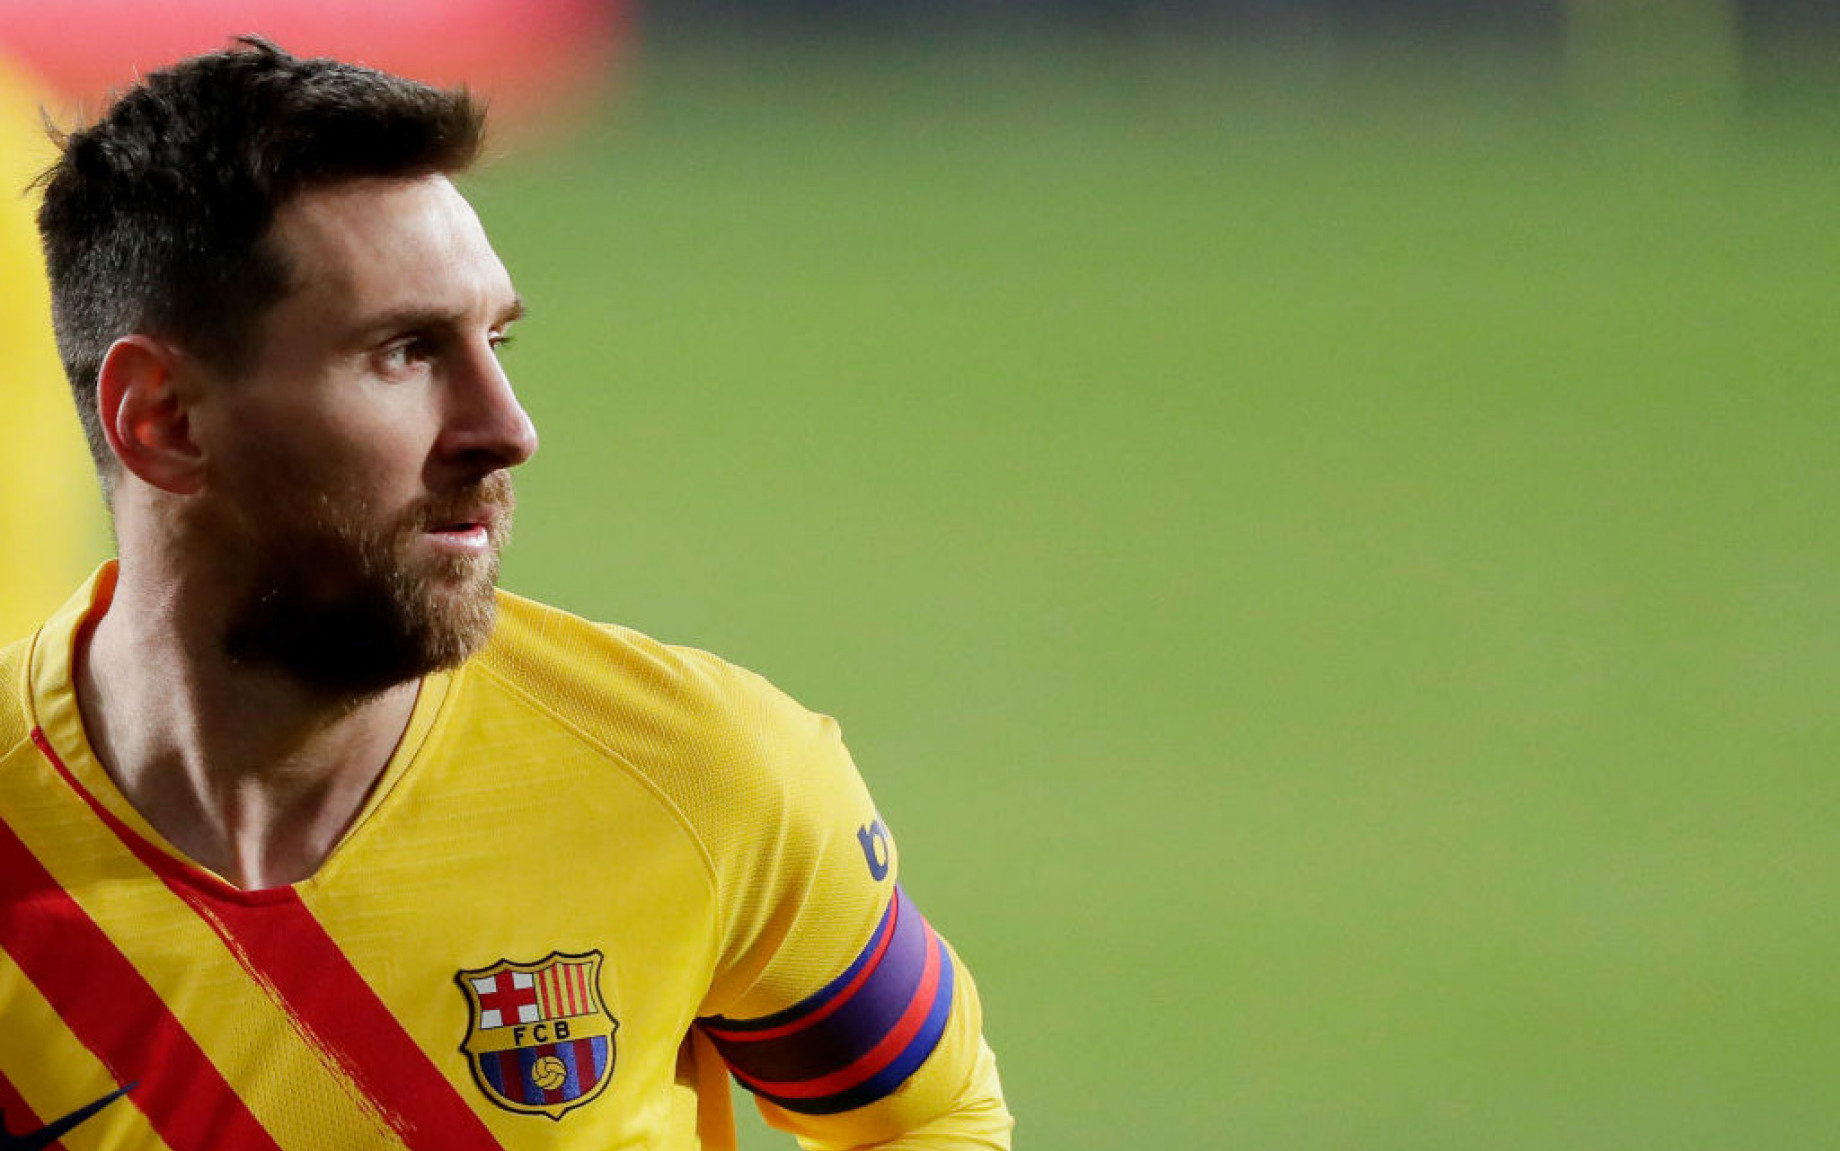 messi_barcellona_getty_gallery.jpg